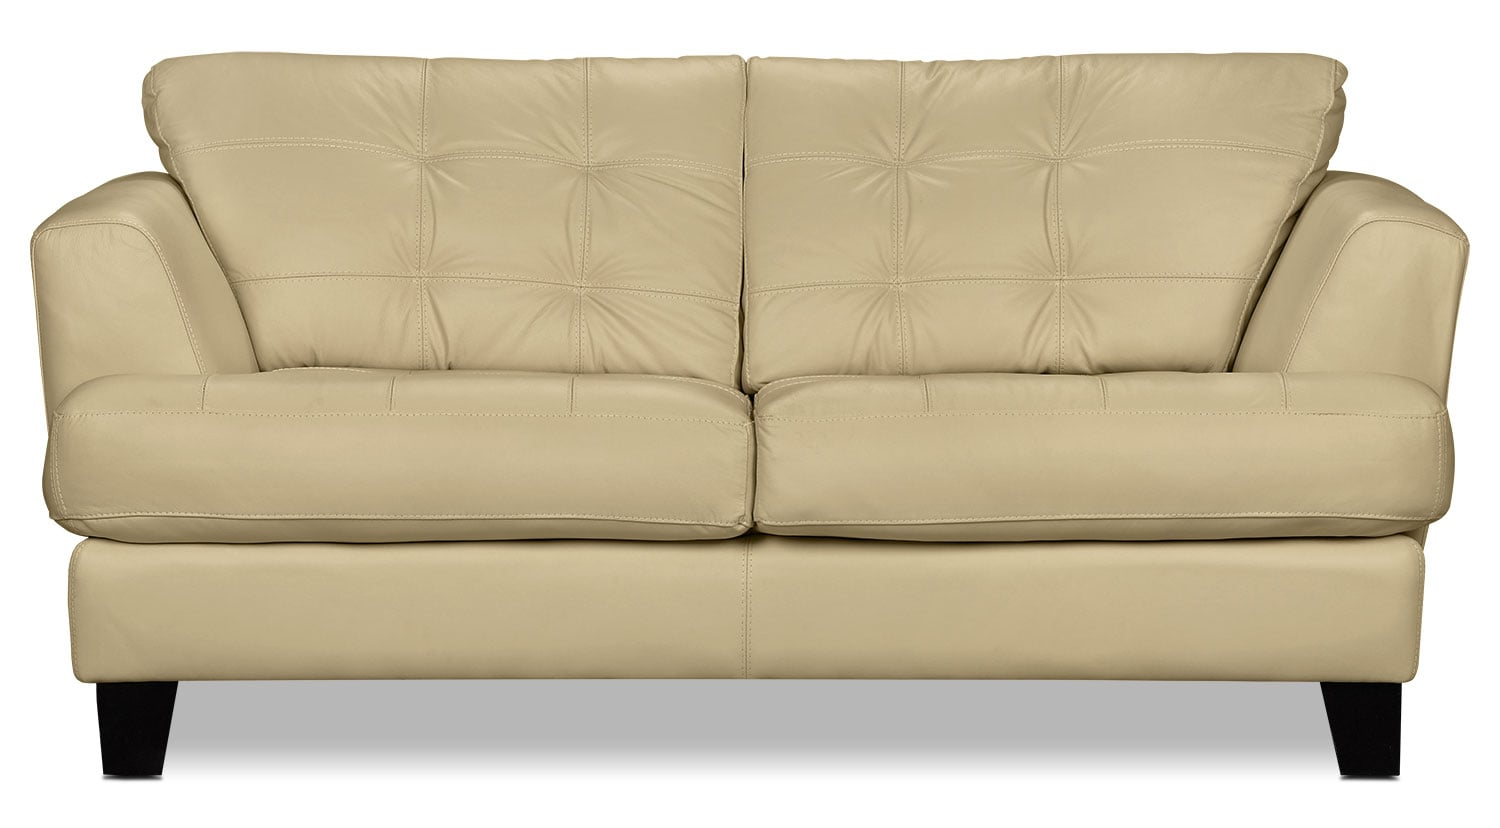 Living Room Furniture - Avenue Genuine Leather Loveseat - Ivory